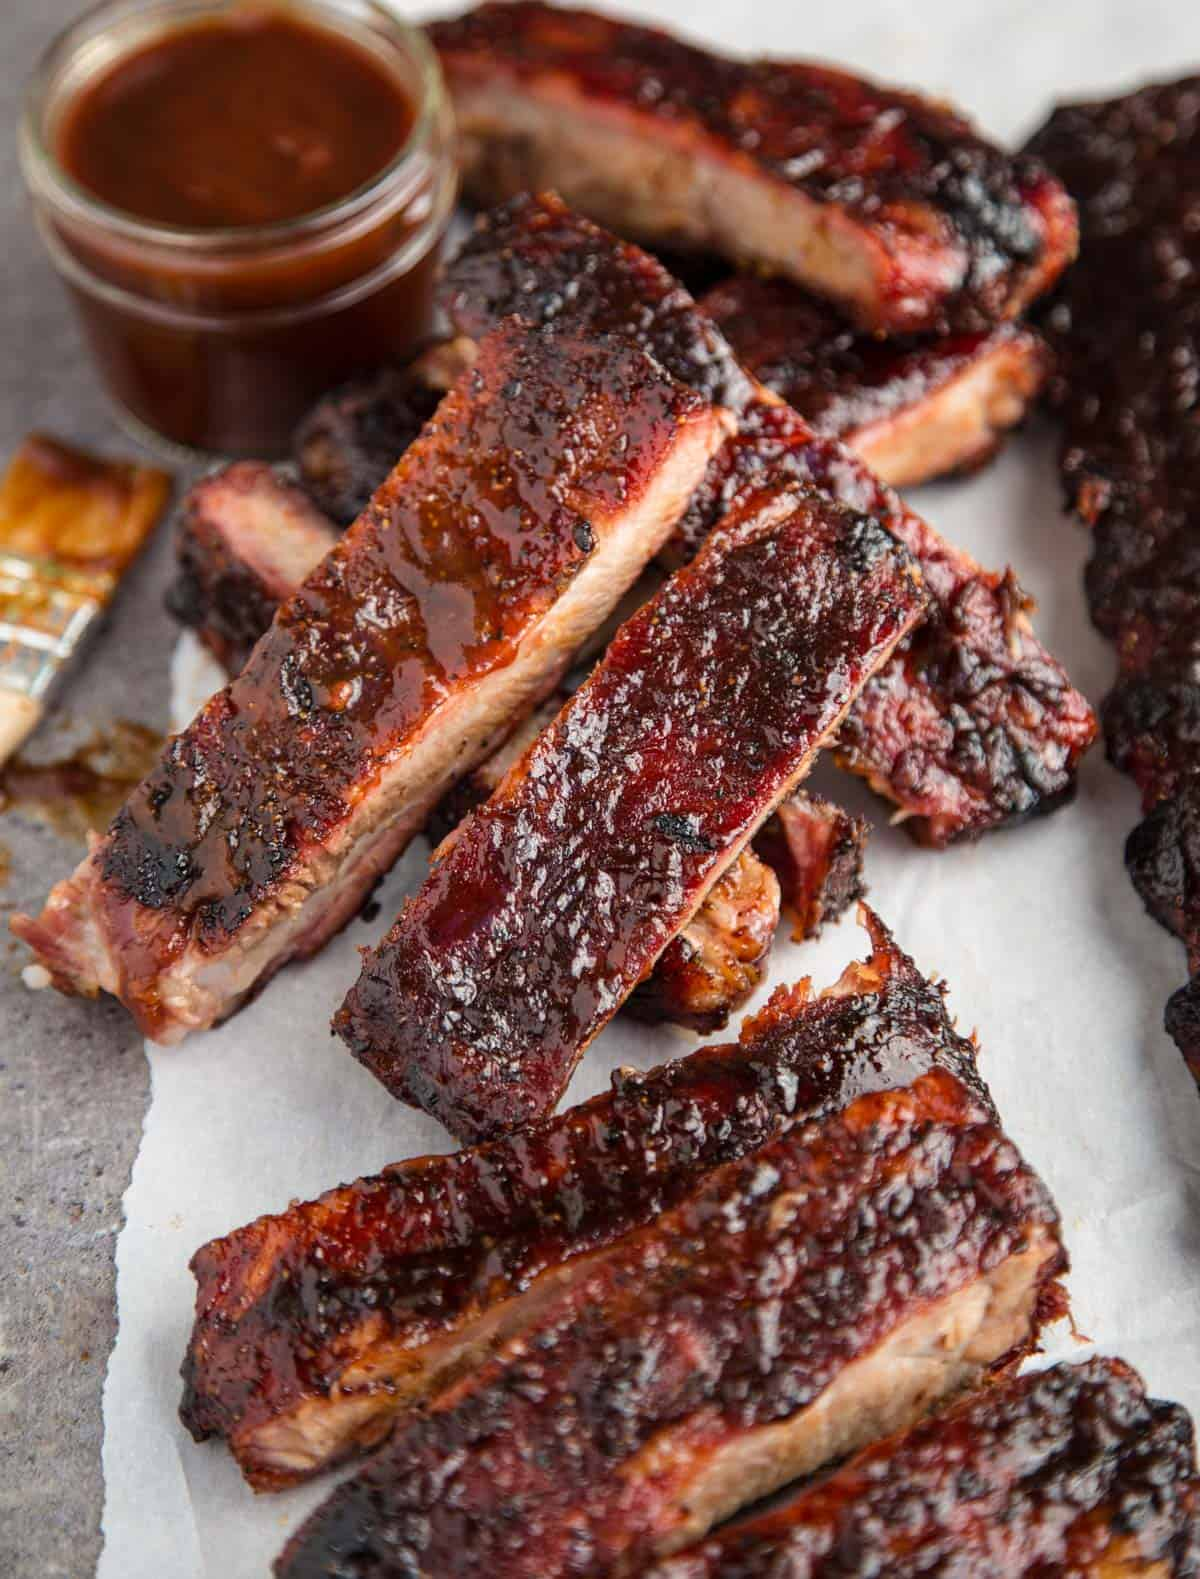 Pellet Grill Smoked Ribs sliced into individual ribs with Kansas City Style BBQ sauce on them